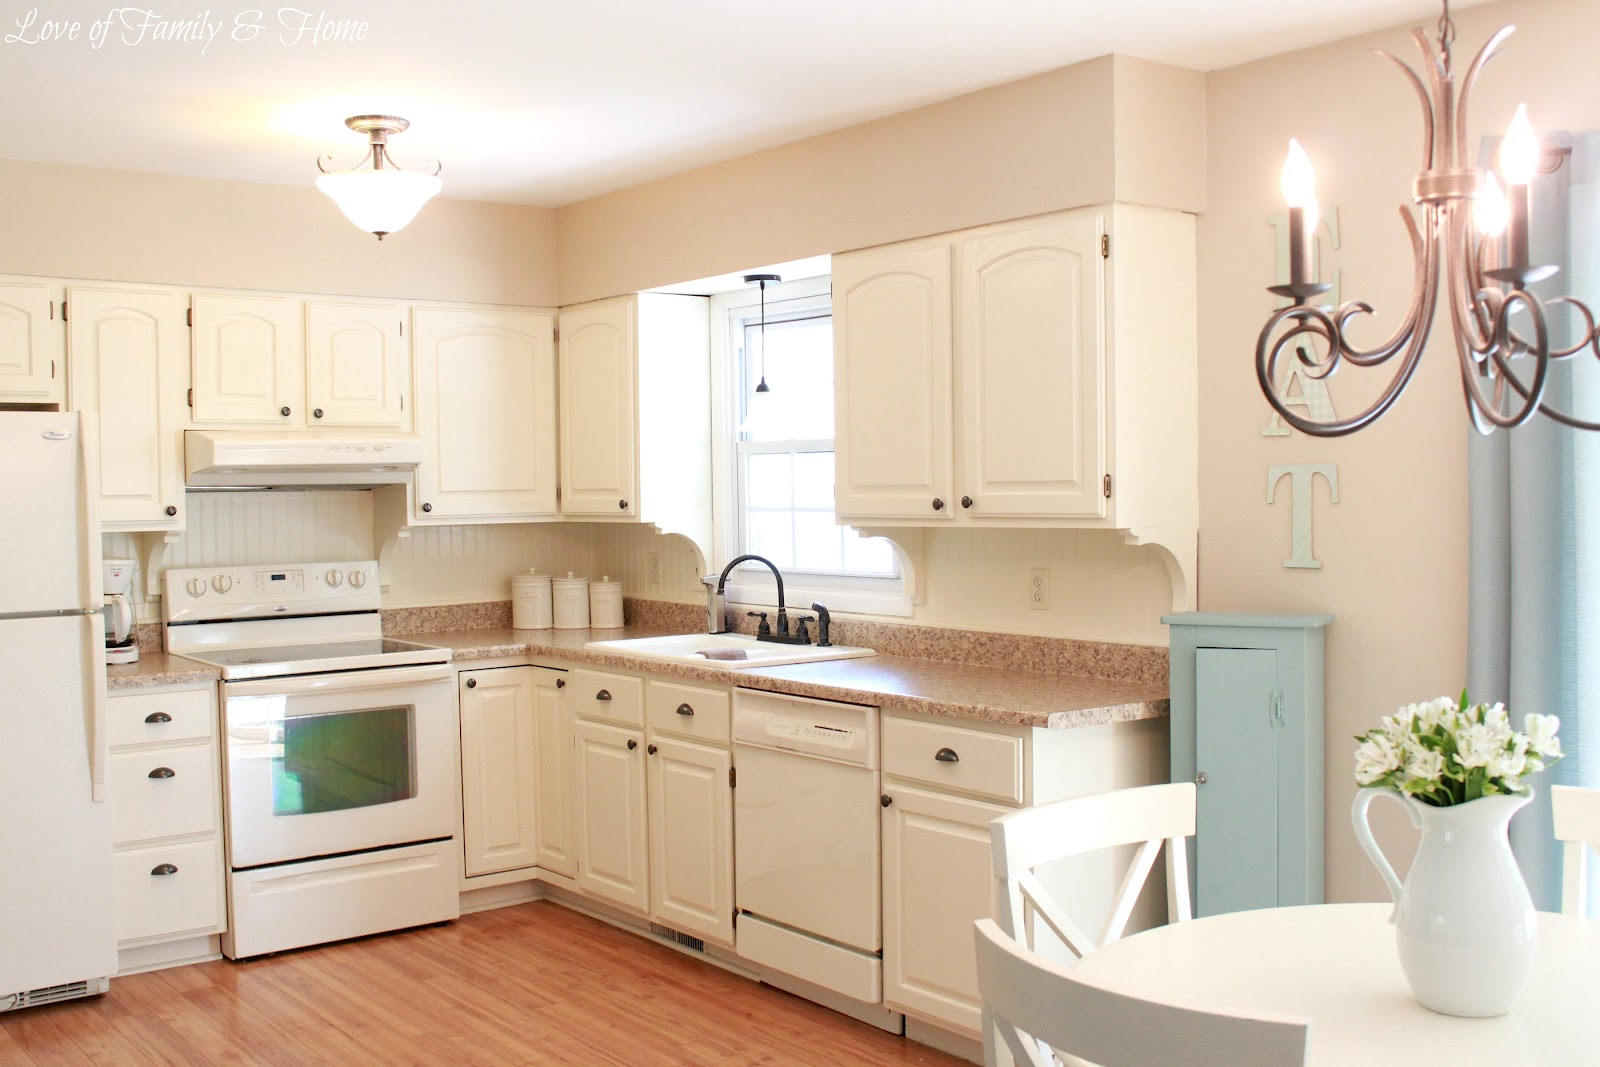 beadboard backsplash corbel love kitchen updates kitchen backsplash ideas dark cabinets kitchen backsplash ideas